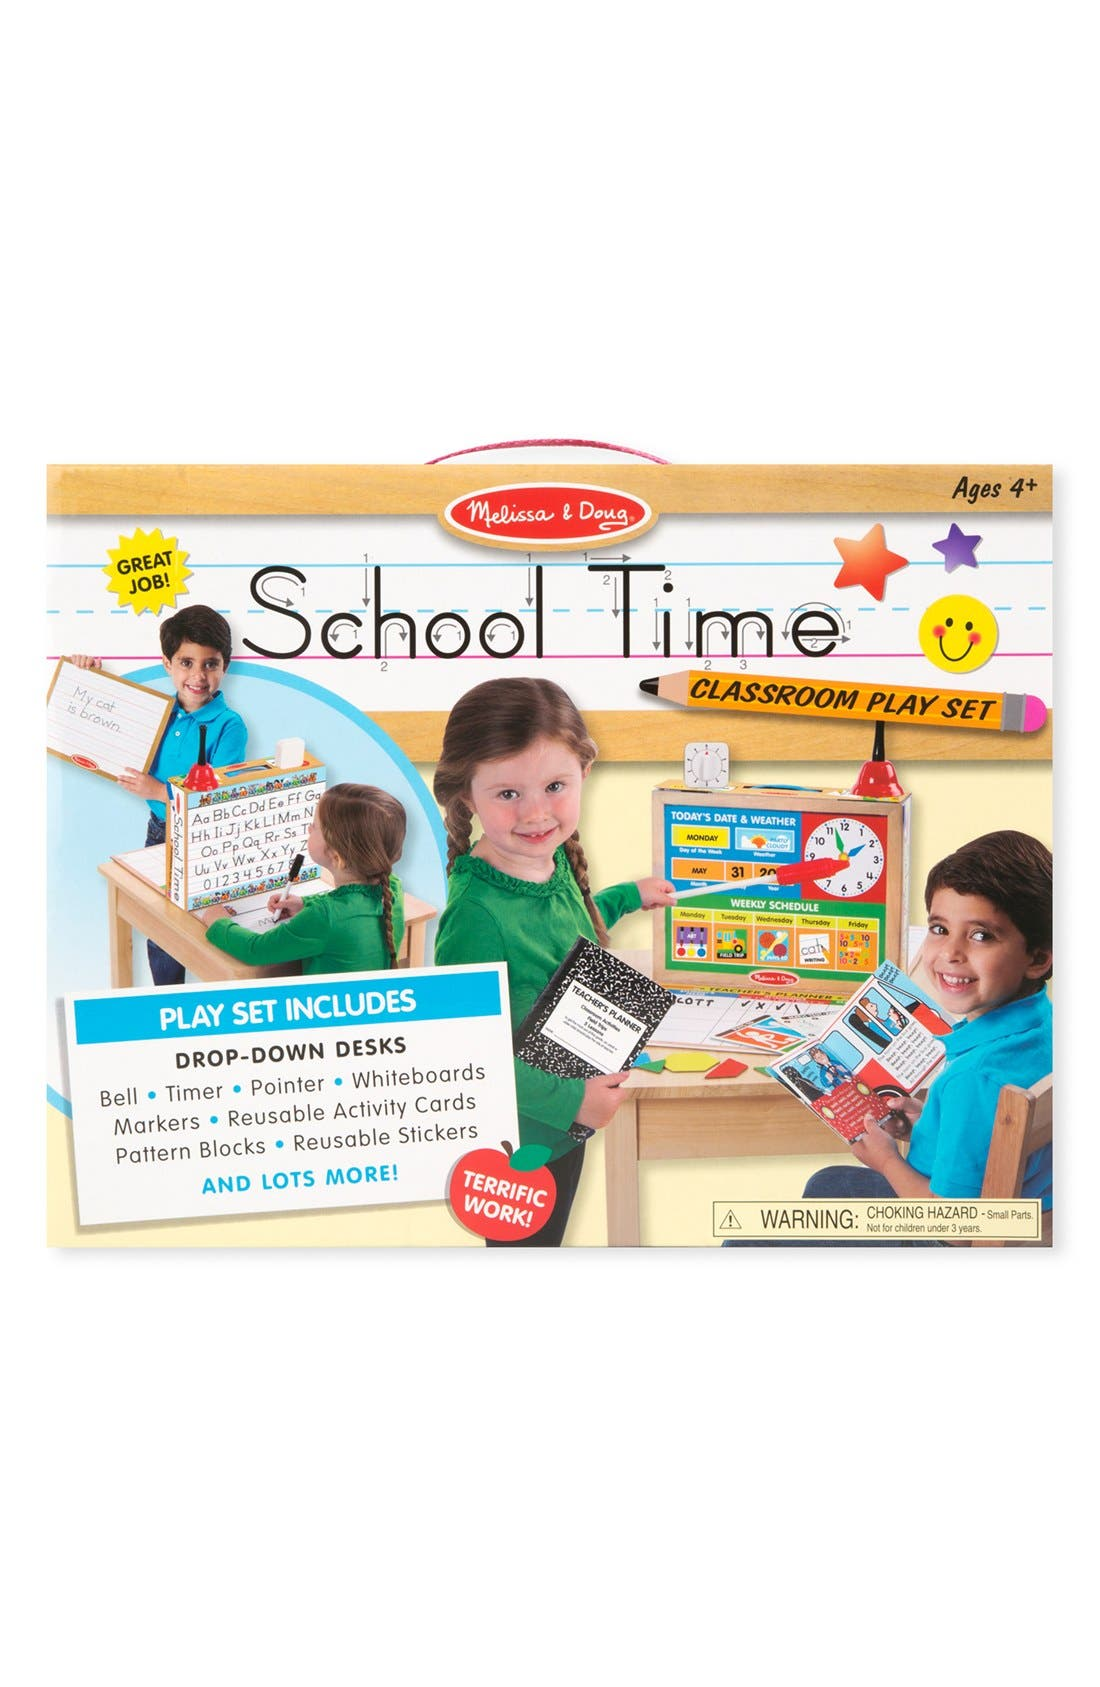 MELISSA & DOUG 'School Time!' Classroom Play Set, Main, color, BROWN